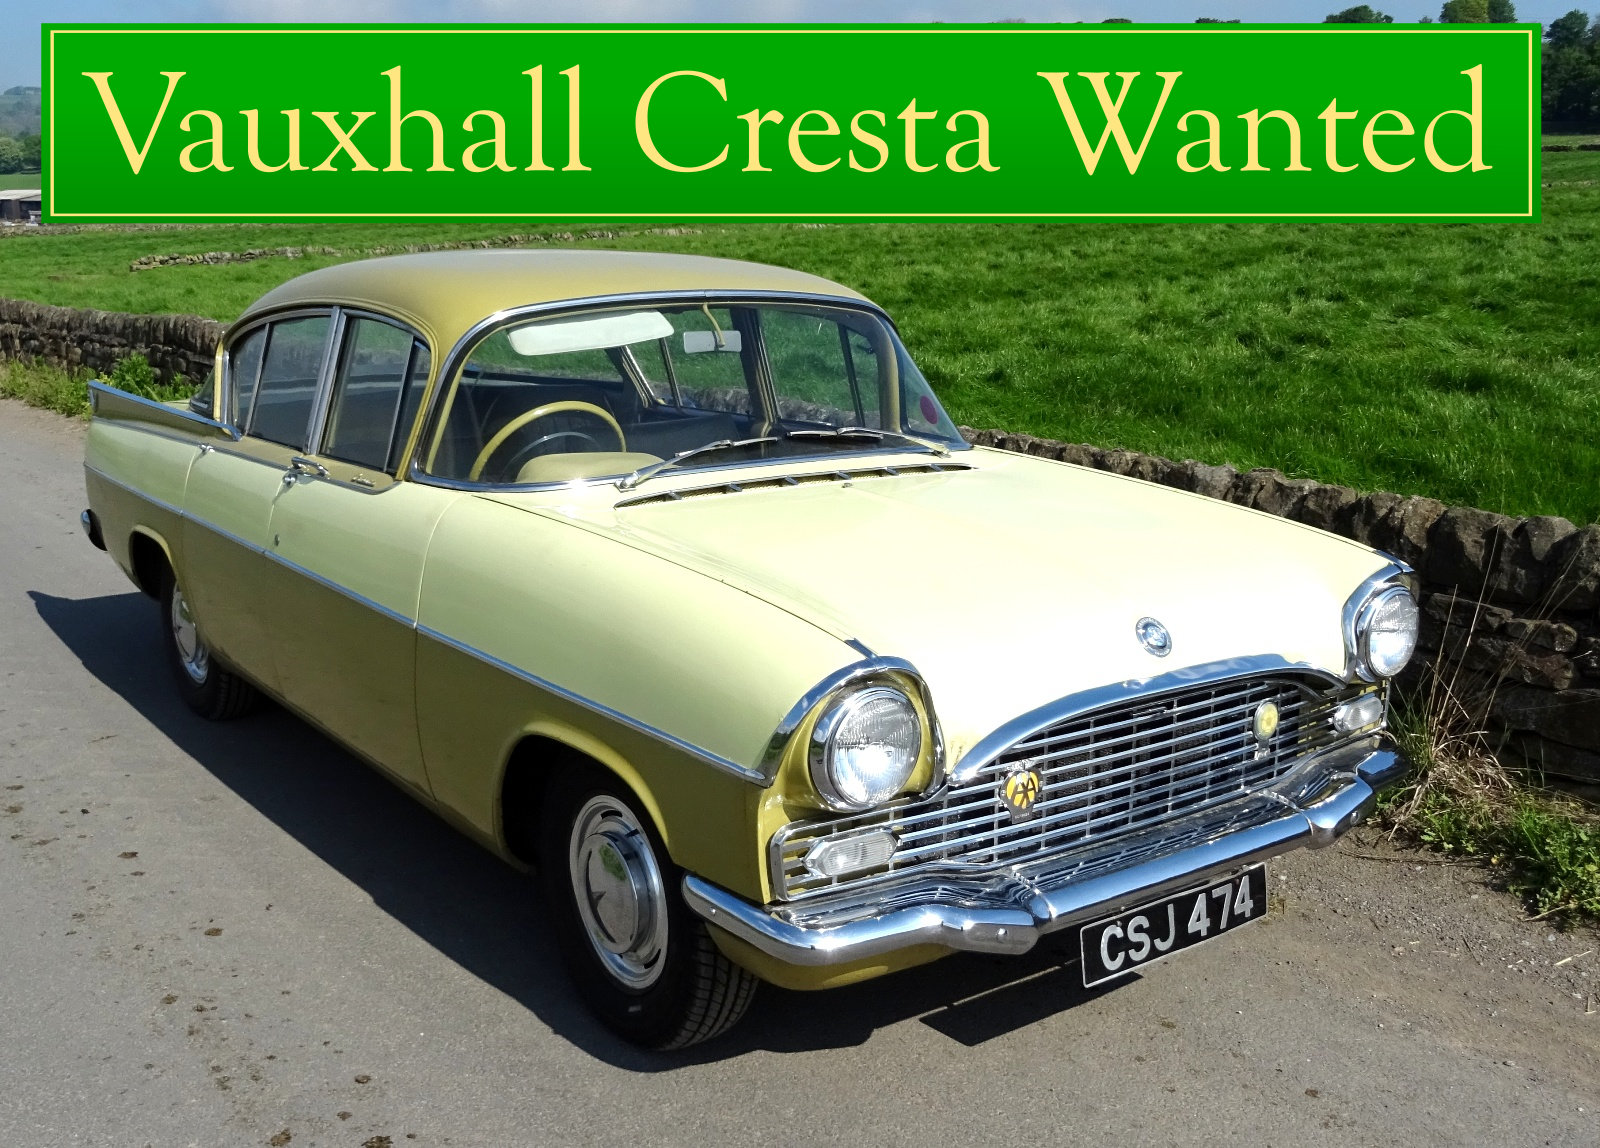 FORD ZODIAC MK2 WANTED, CLASSIC CARS WANTED, INSTANT PAYMENT Wanted (picture 5 of 6)